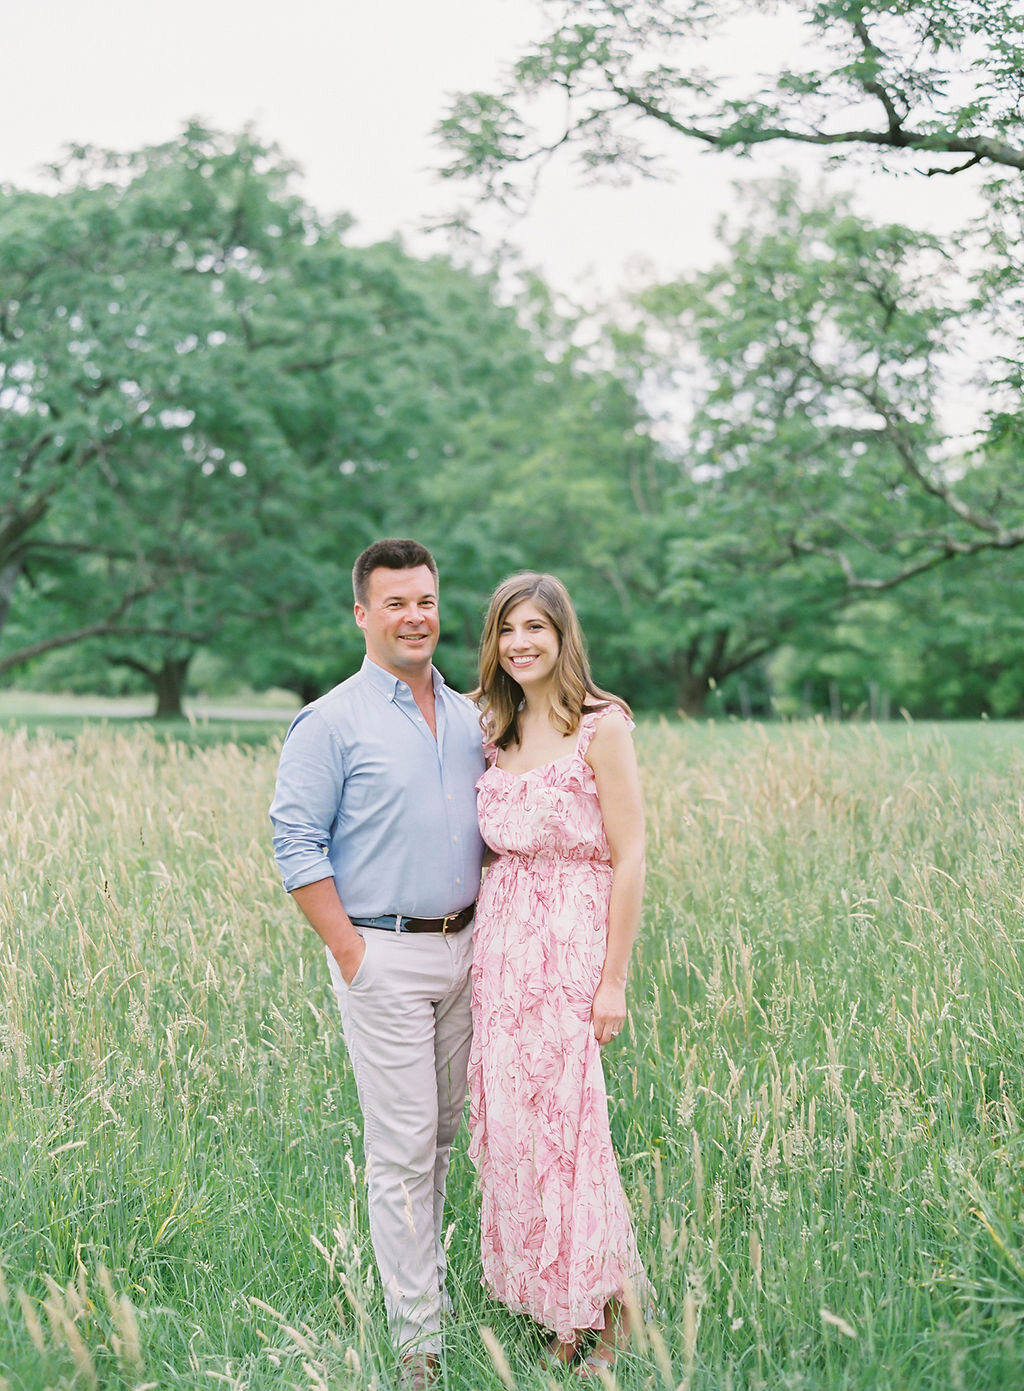 Cylburn Arboretum and Tribeca Engagement Photography Session by Vicki Grafton on East Made Co Baltimore Wedding Planner Blog-60.jpg